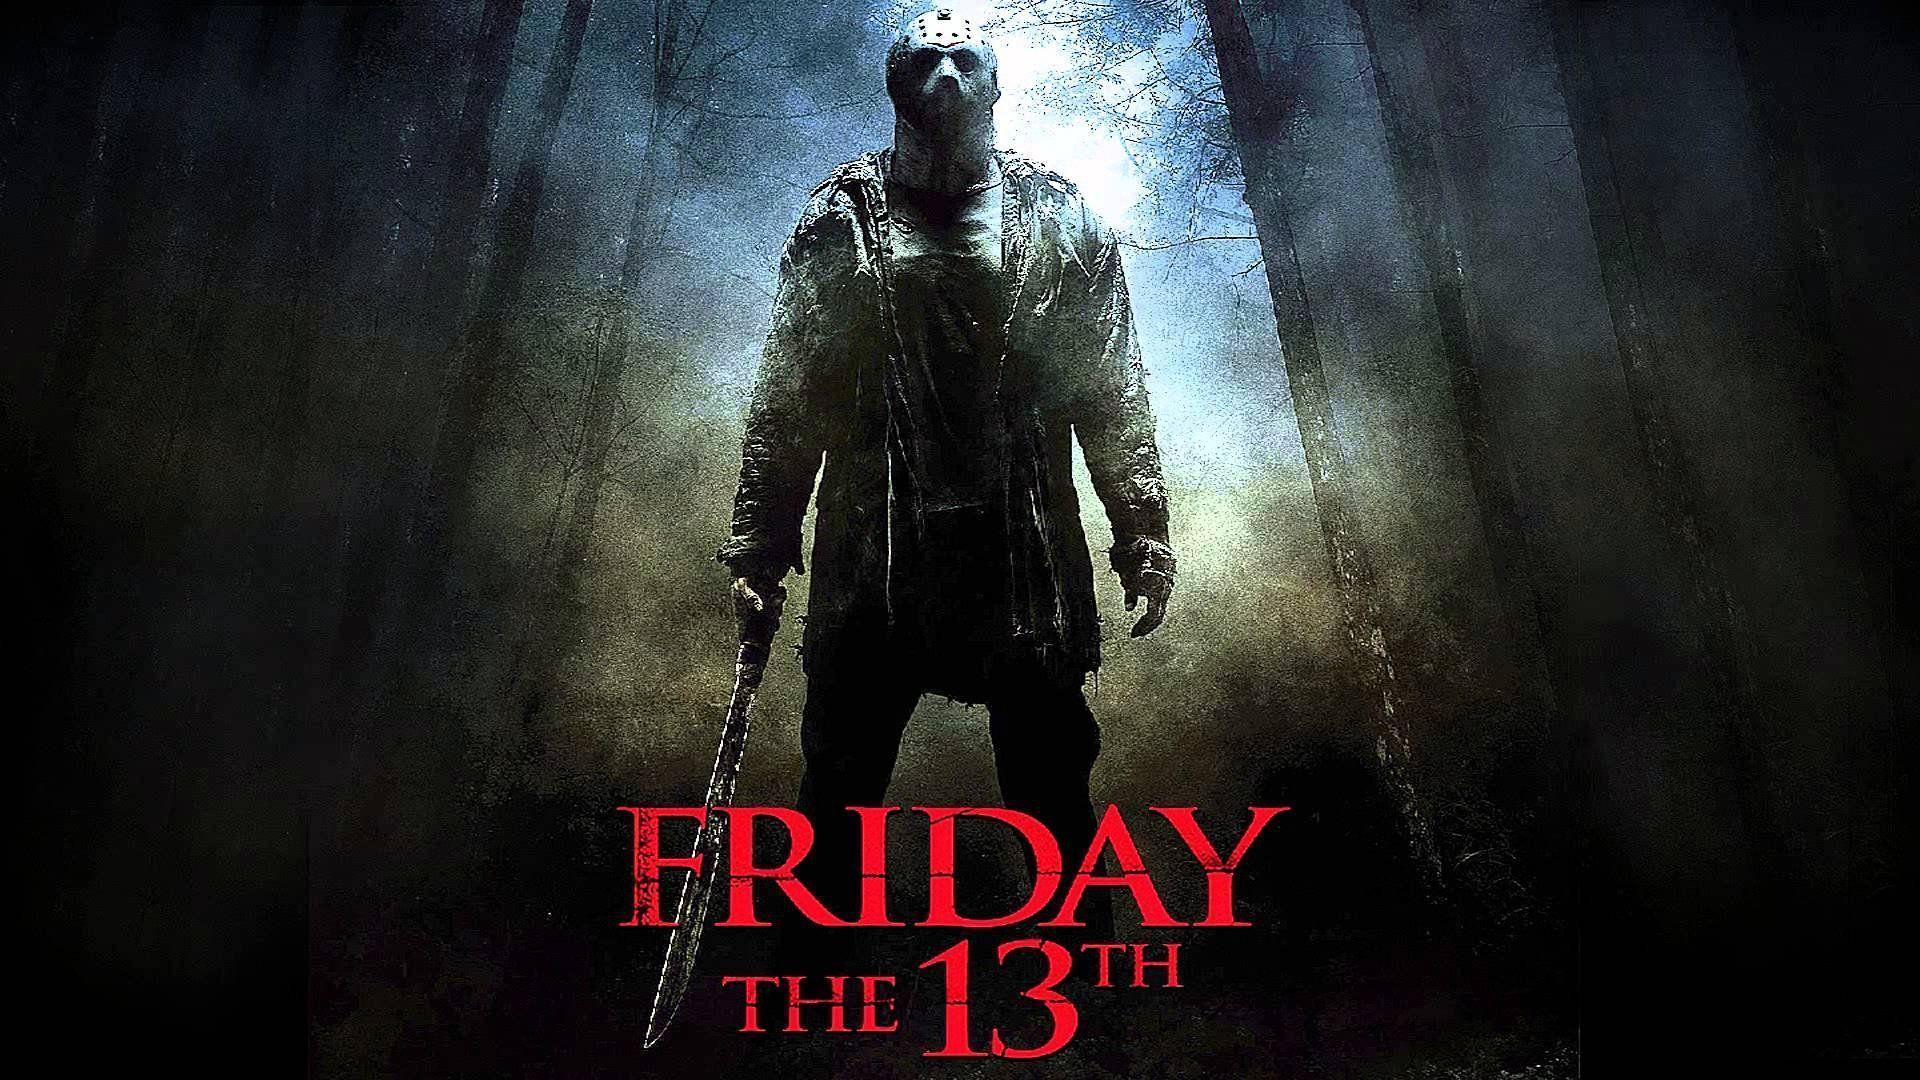 Friday the 13th Pictures Wallpaper - WallpaperSafari